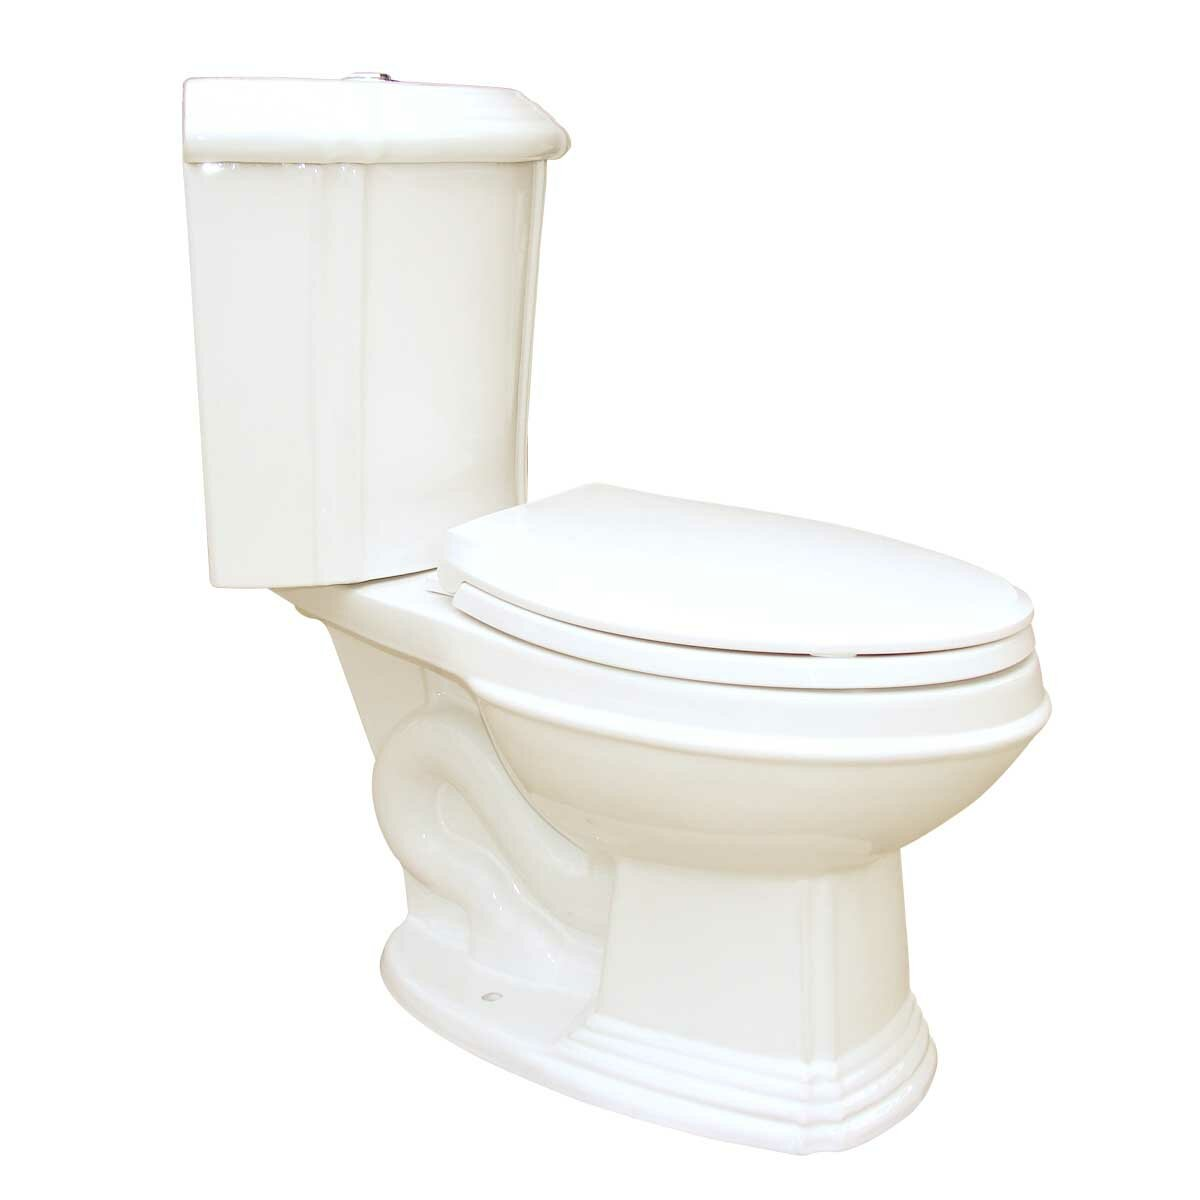 Marvelous China Dual Flush Elongated Two Piece Toilet Seat Included Beatyapartments Chair Design Images Beatyapartmentscom